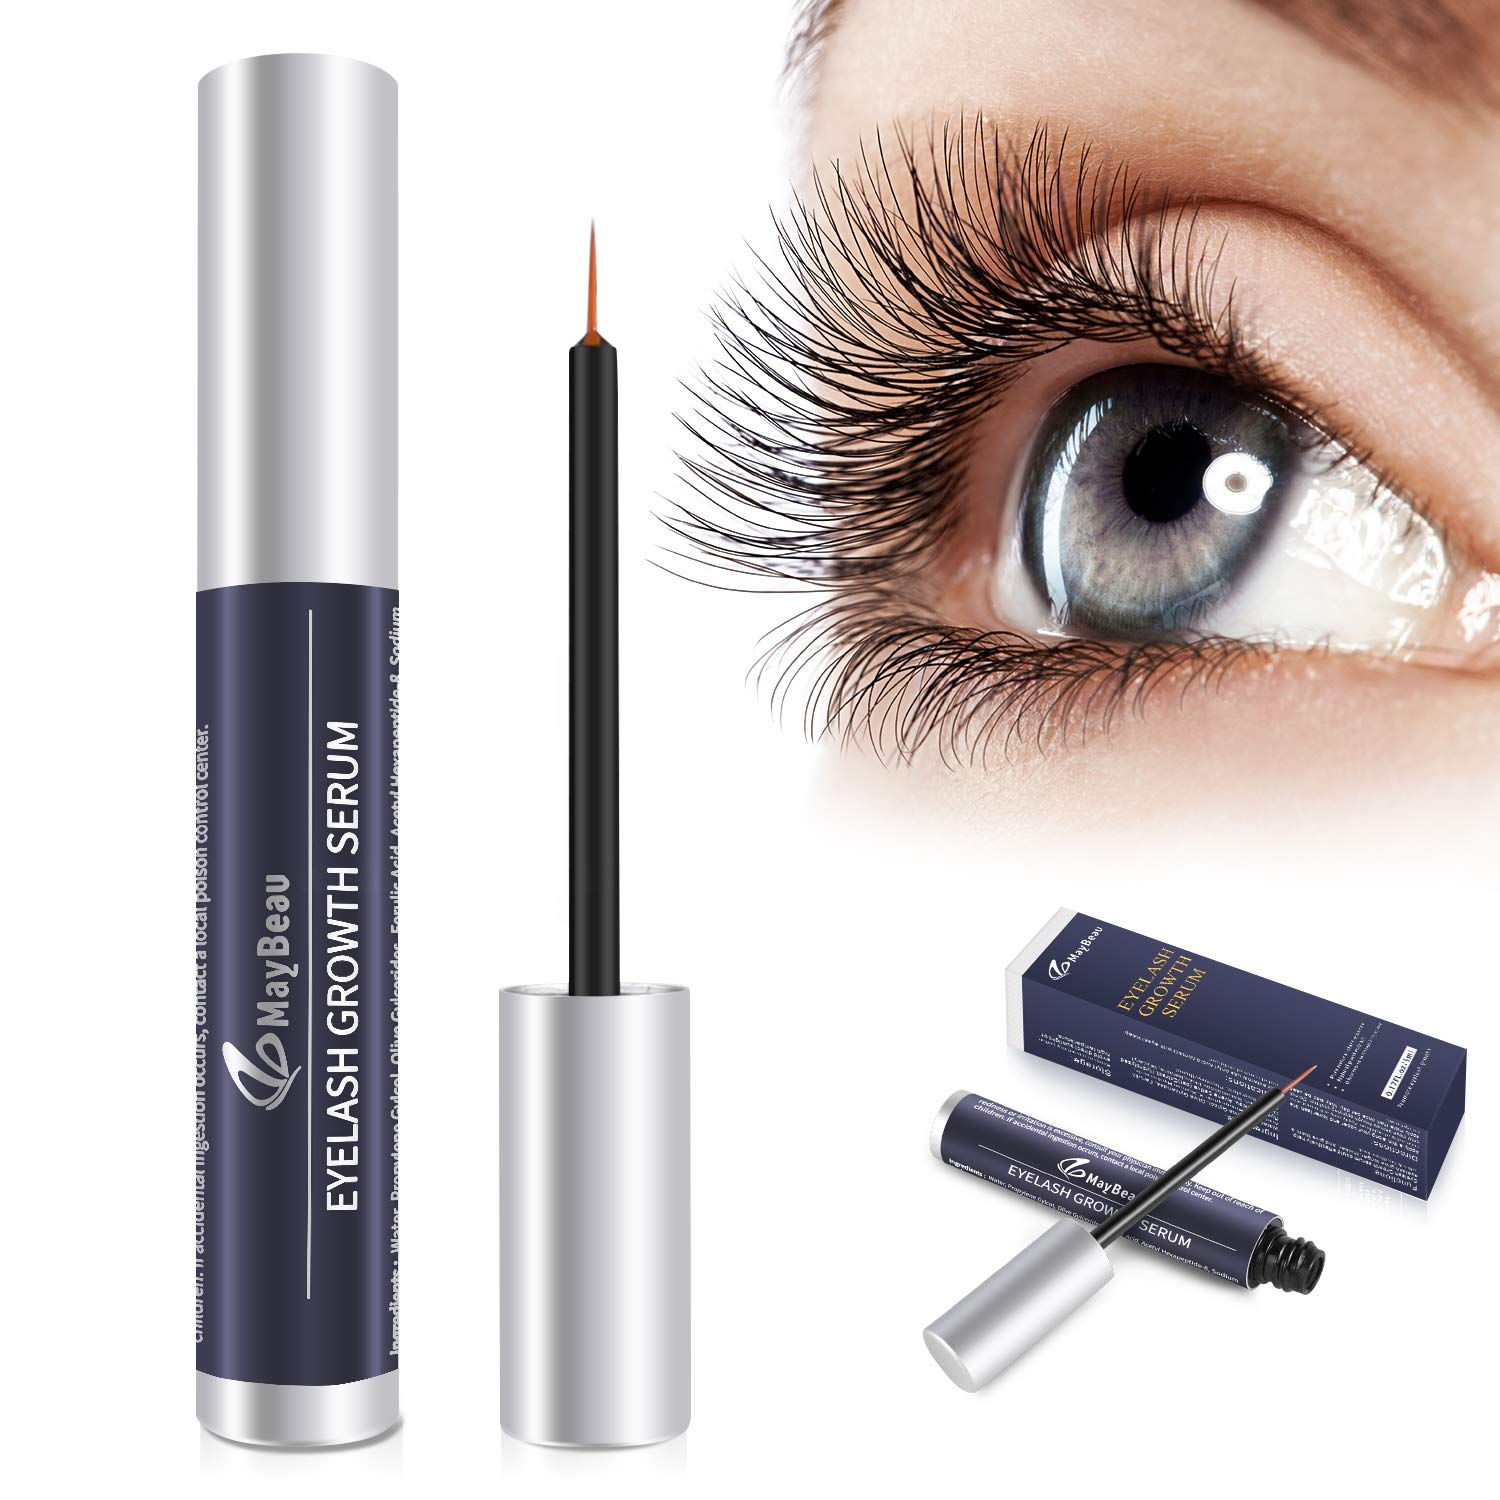 086a883eeaf Amazon.com: Eyelash Growth Serum,MayBeau Natural Brow Lash Enhancer(5ML),Nourish  Damaged Lashes and Boost Rapid Growth for Any Kind of Lash and Brow in 20  ...